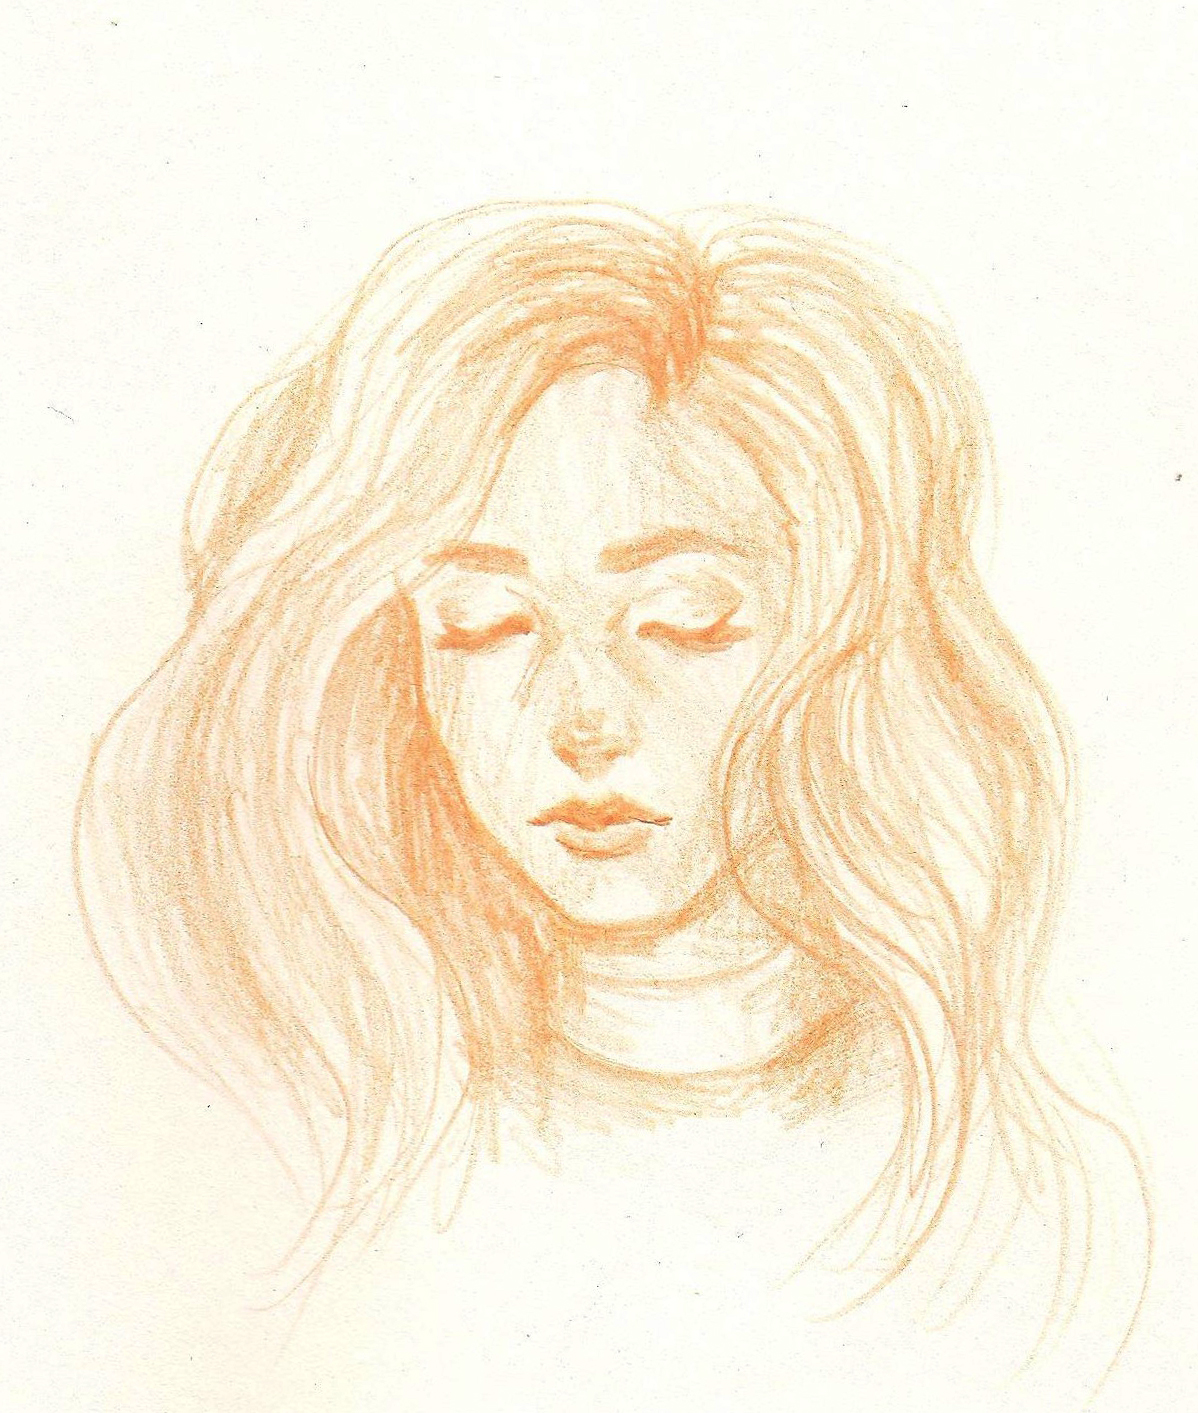 daily-doodle-day-38.jpg